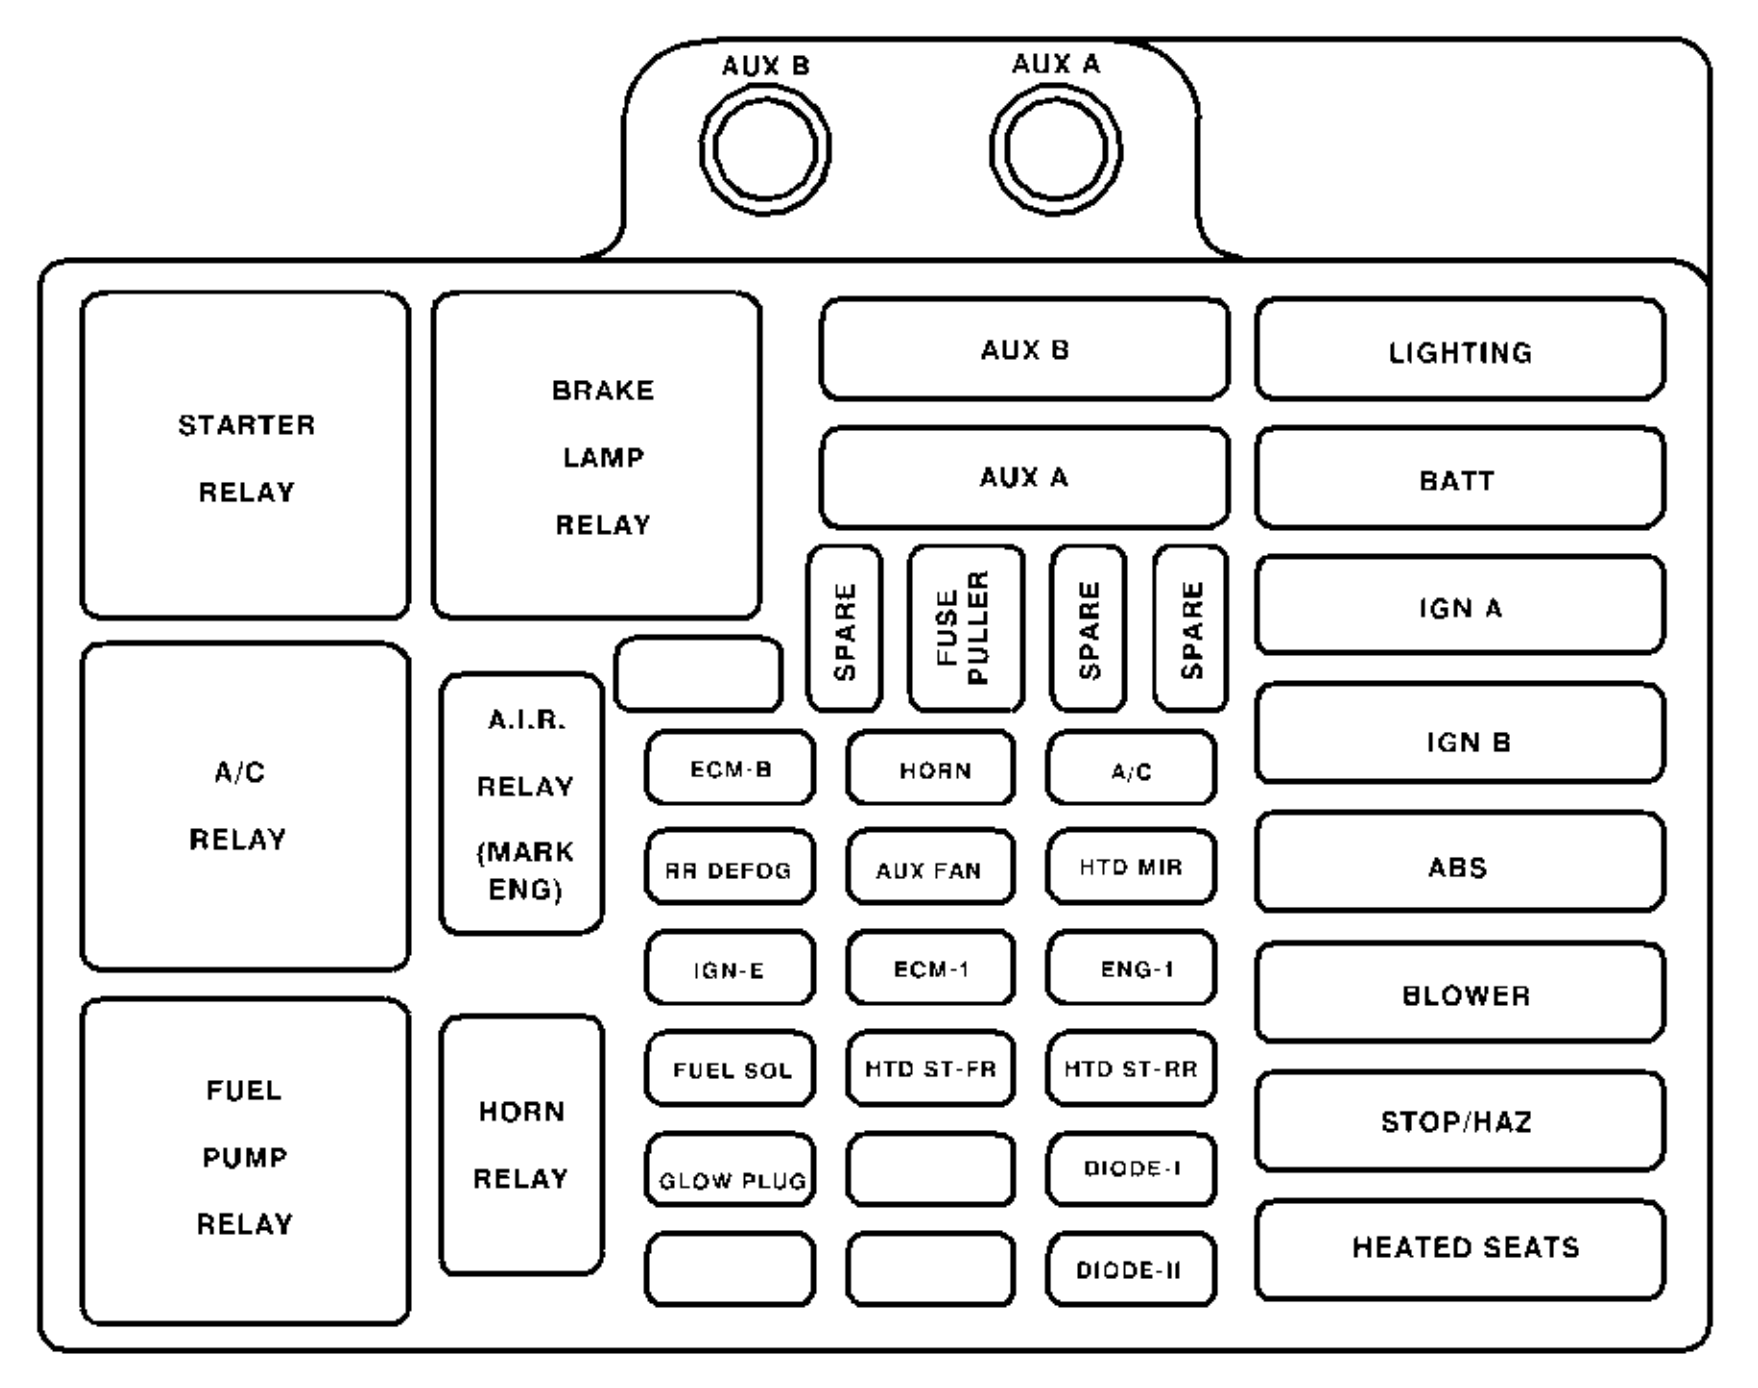 Chevy Fuse Block Diagram - Board Wiring Diagrams